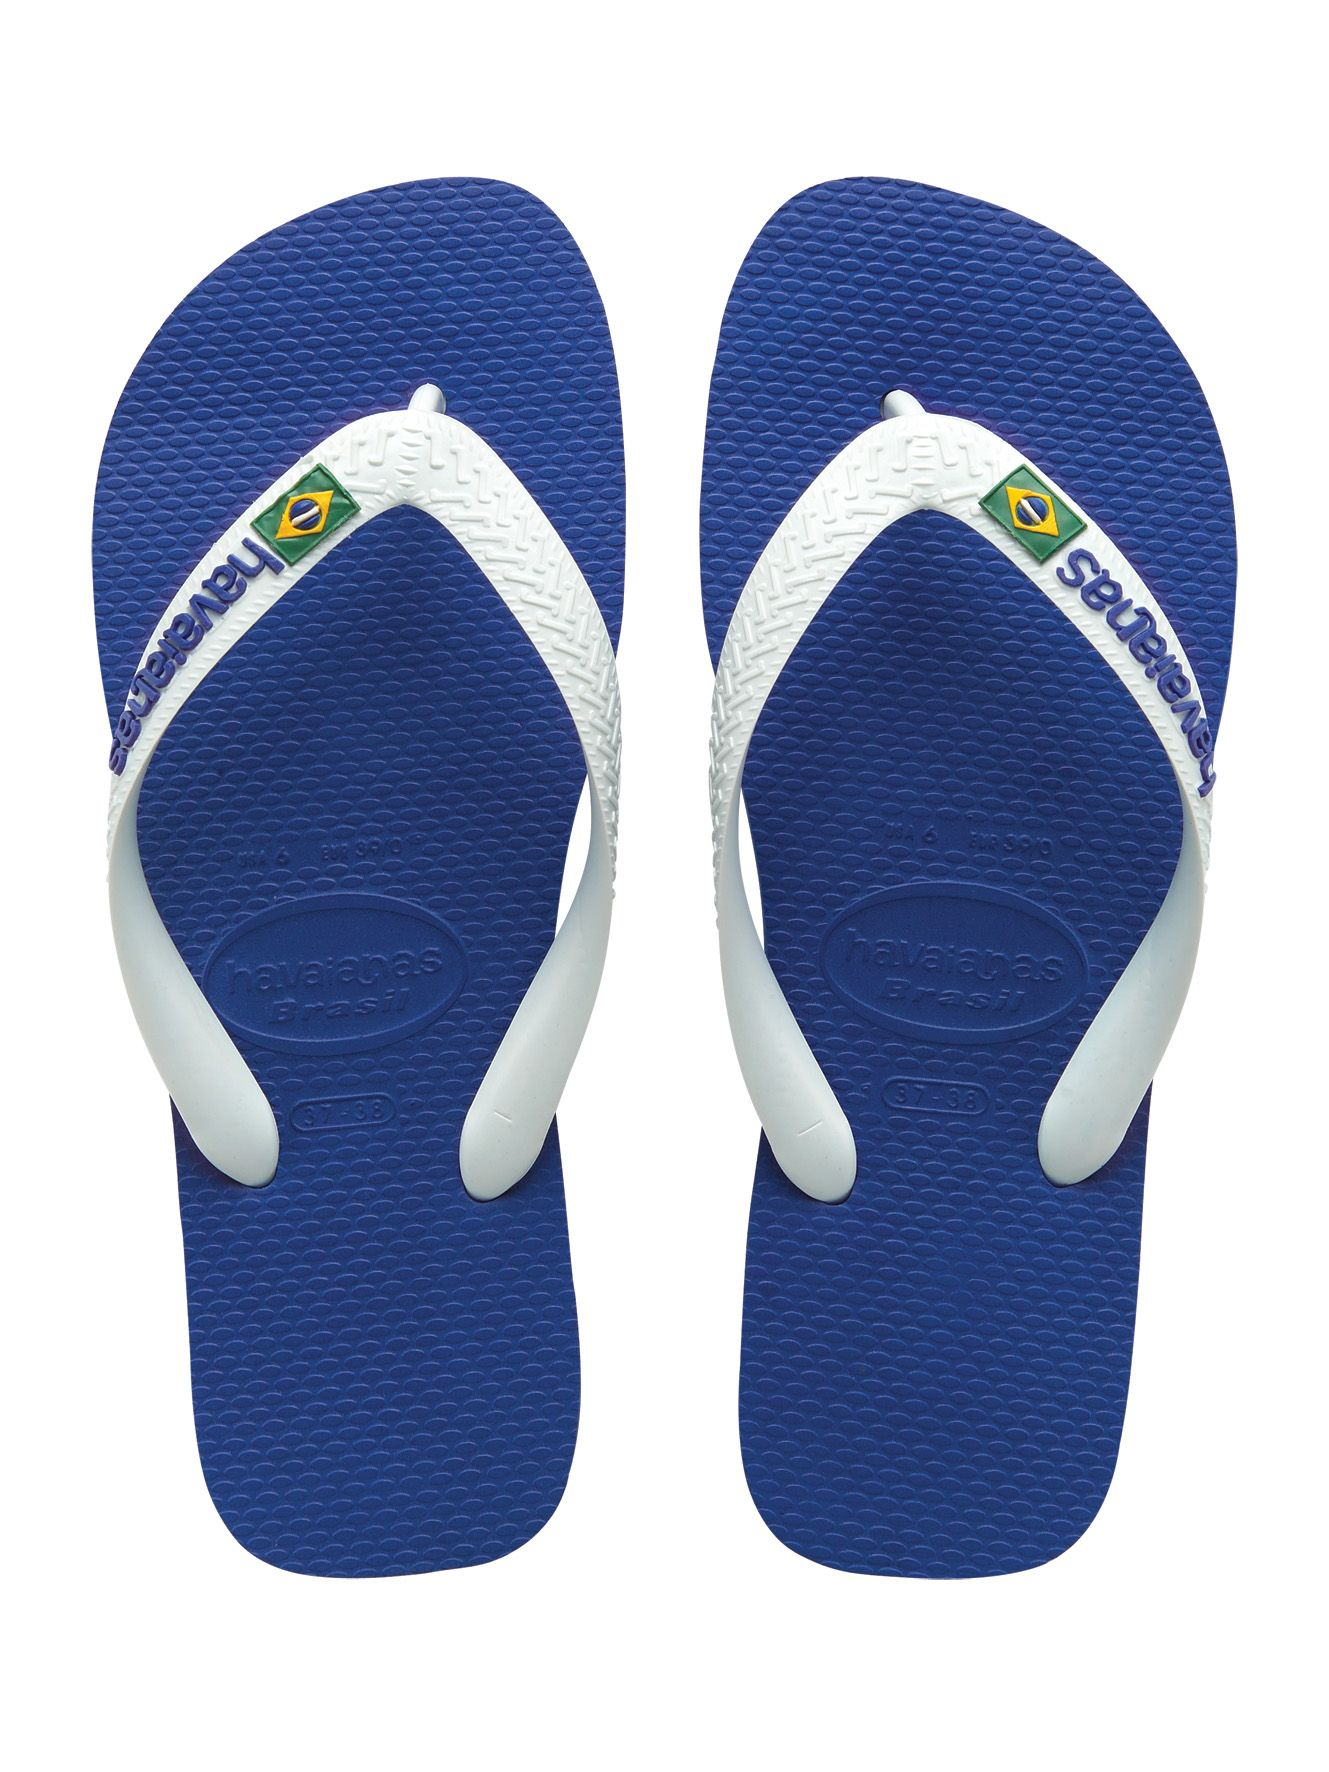 283de929a2b2 ... sandals and graphic motivational fitness clothing. Havaianas Brasil  Logo Blue